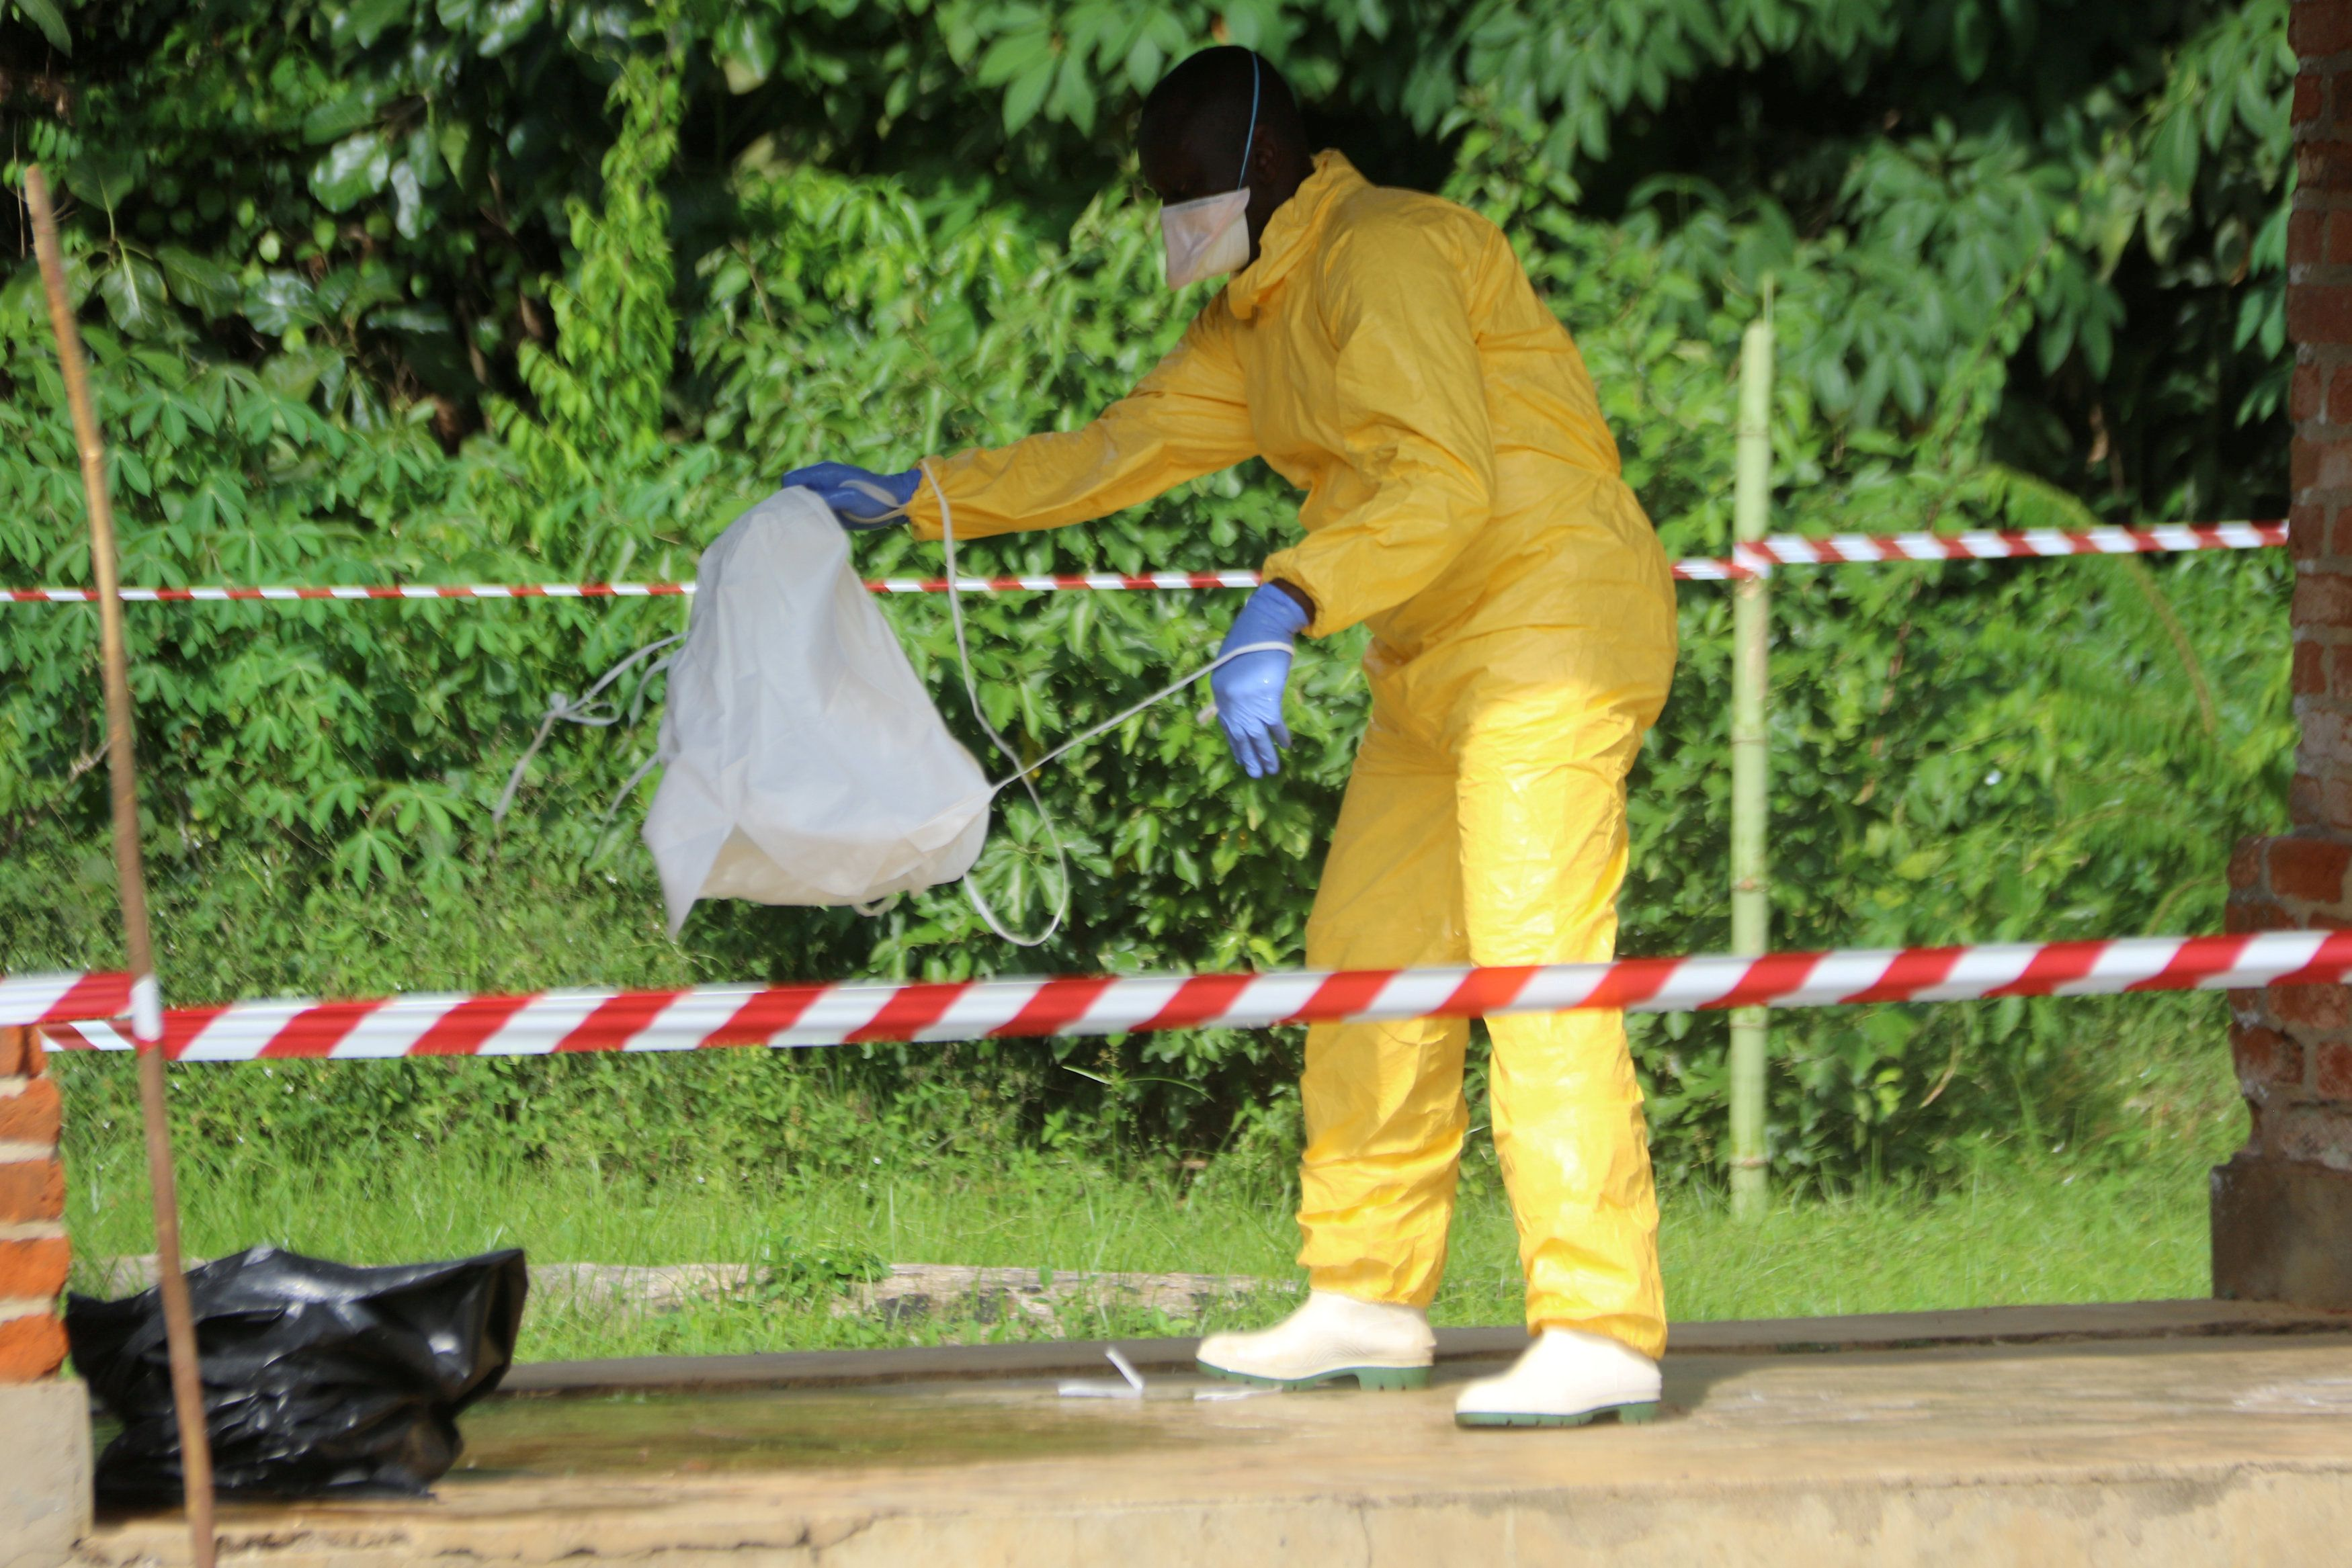 DR Congo Faces 'Very High' Risk From Ebola Outbreak As Virus Confirmed In Major